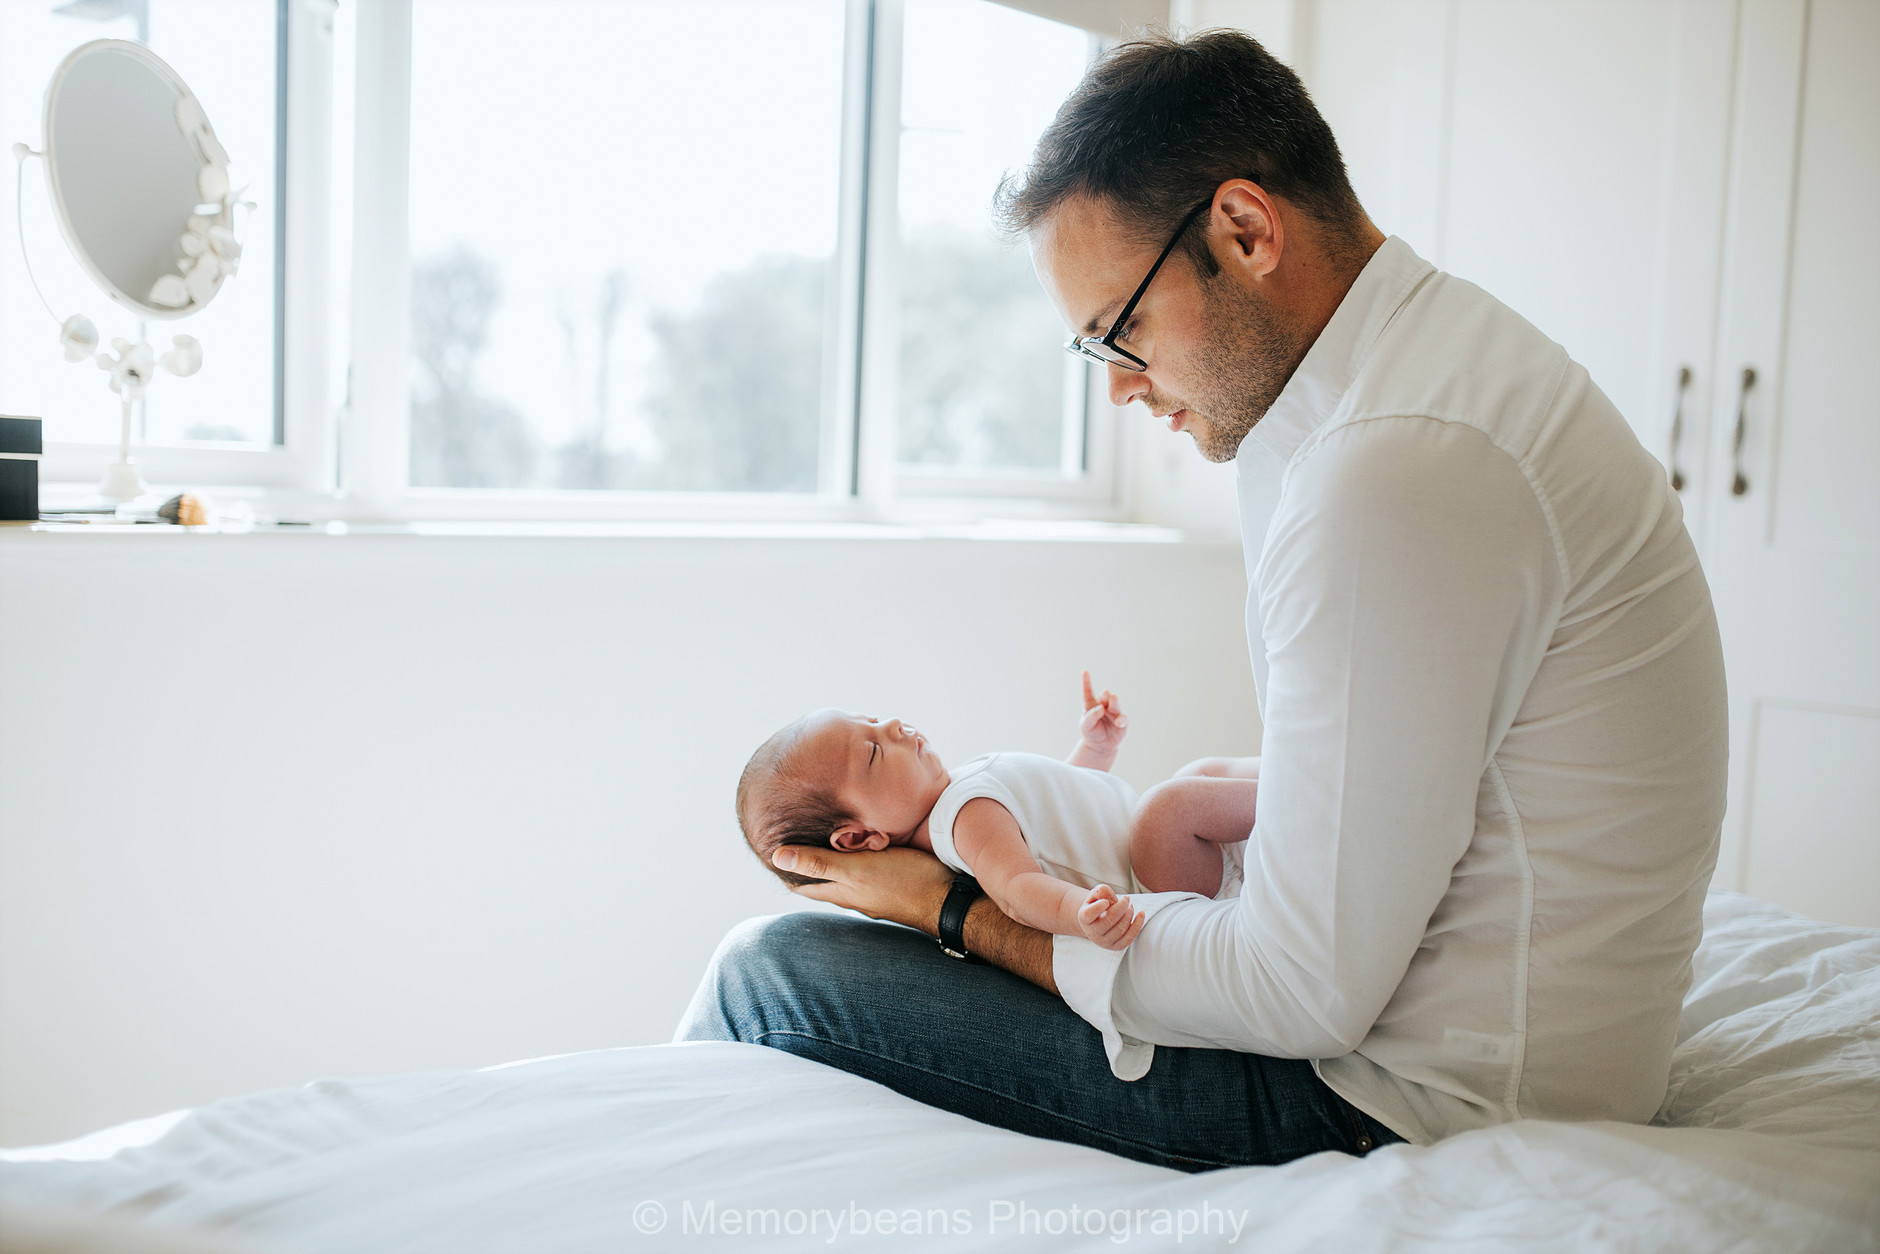 Father sitting on the bed holding and looking at his baby